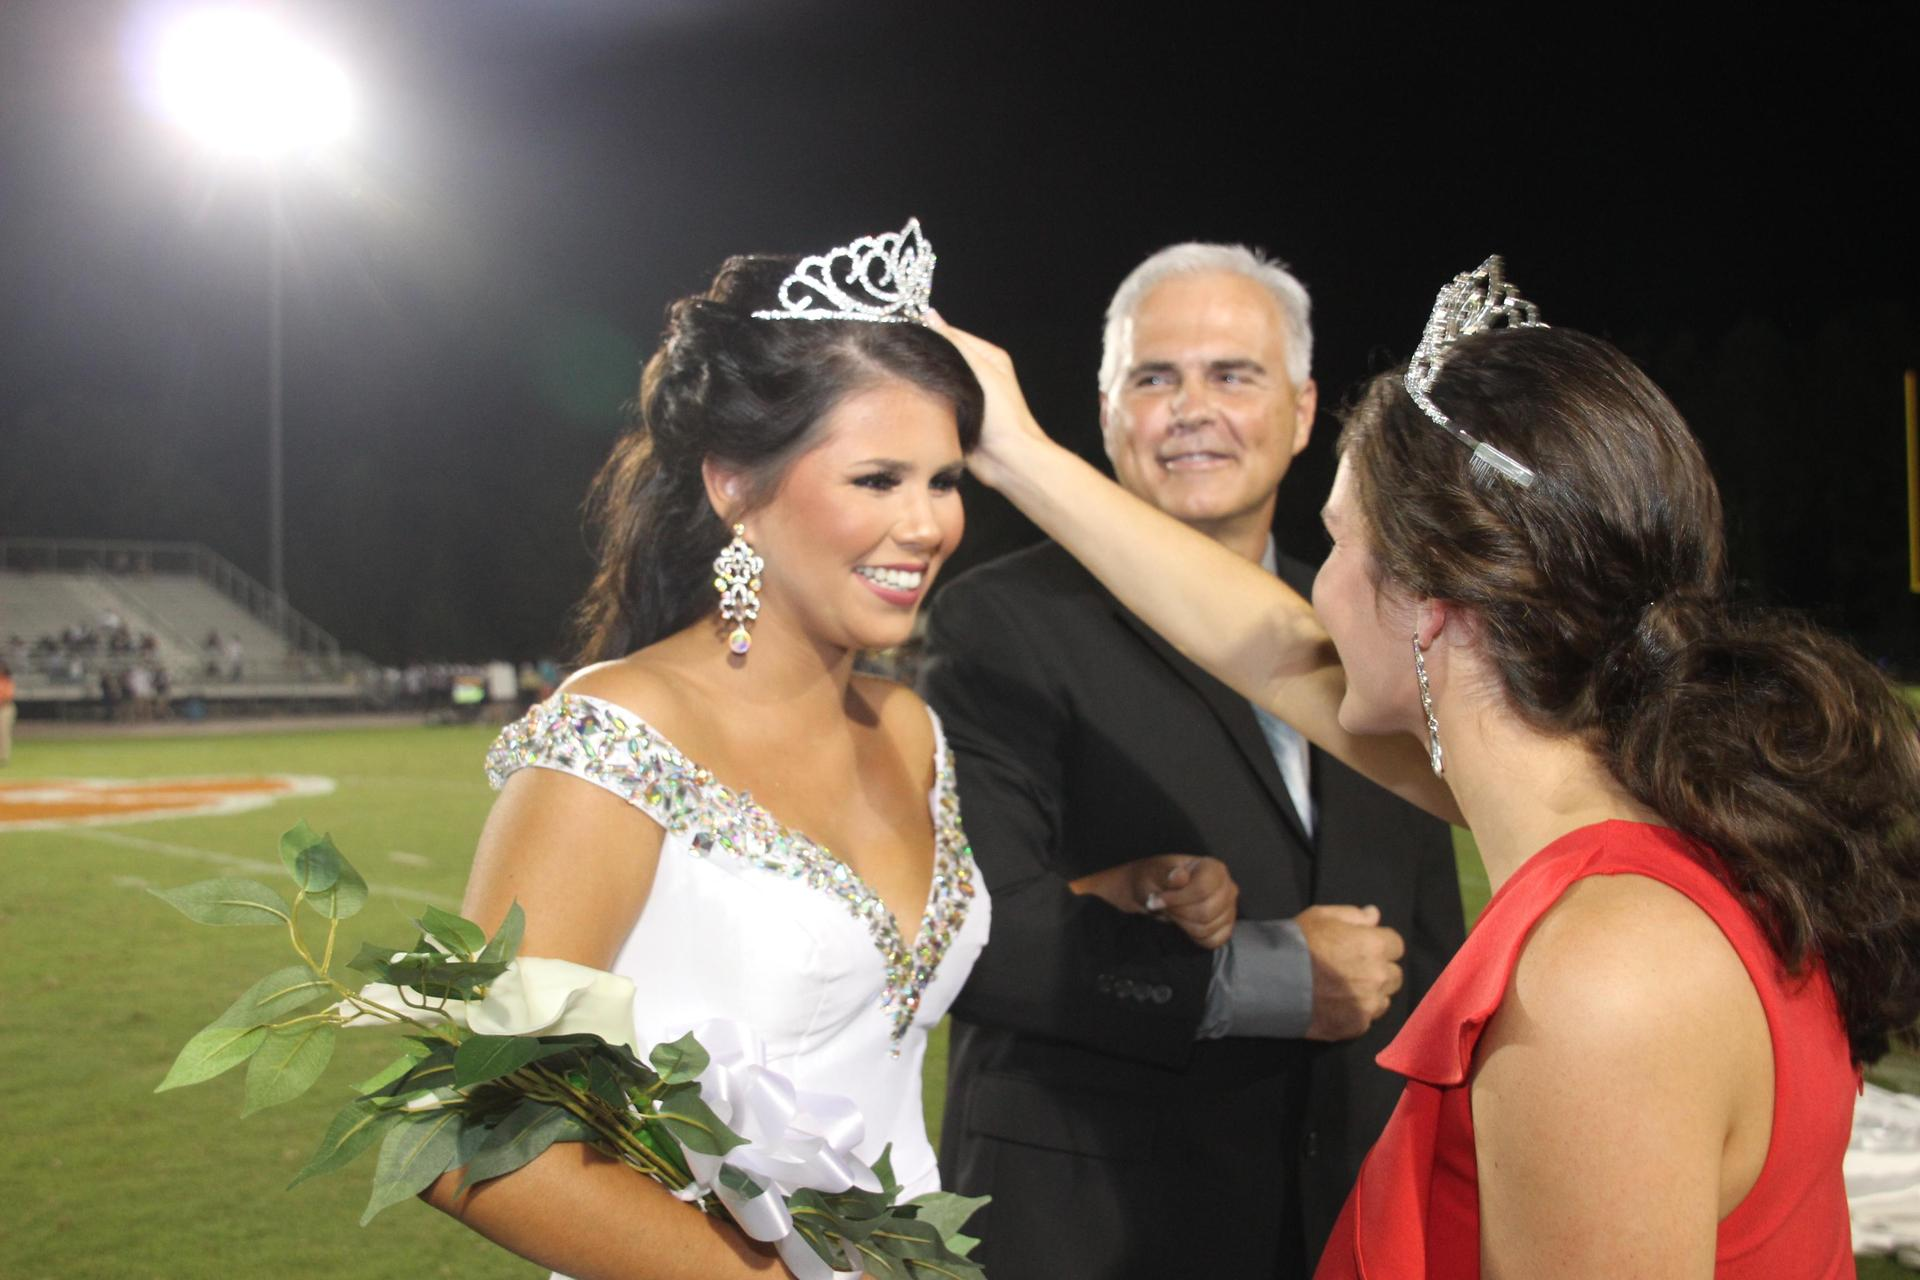 Homecoming Queen is Crowned by Student